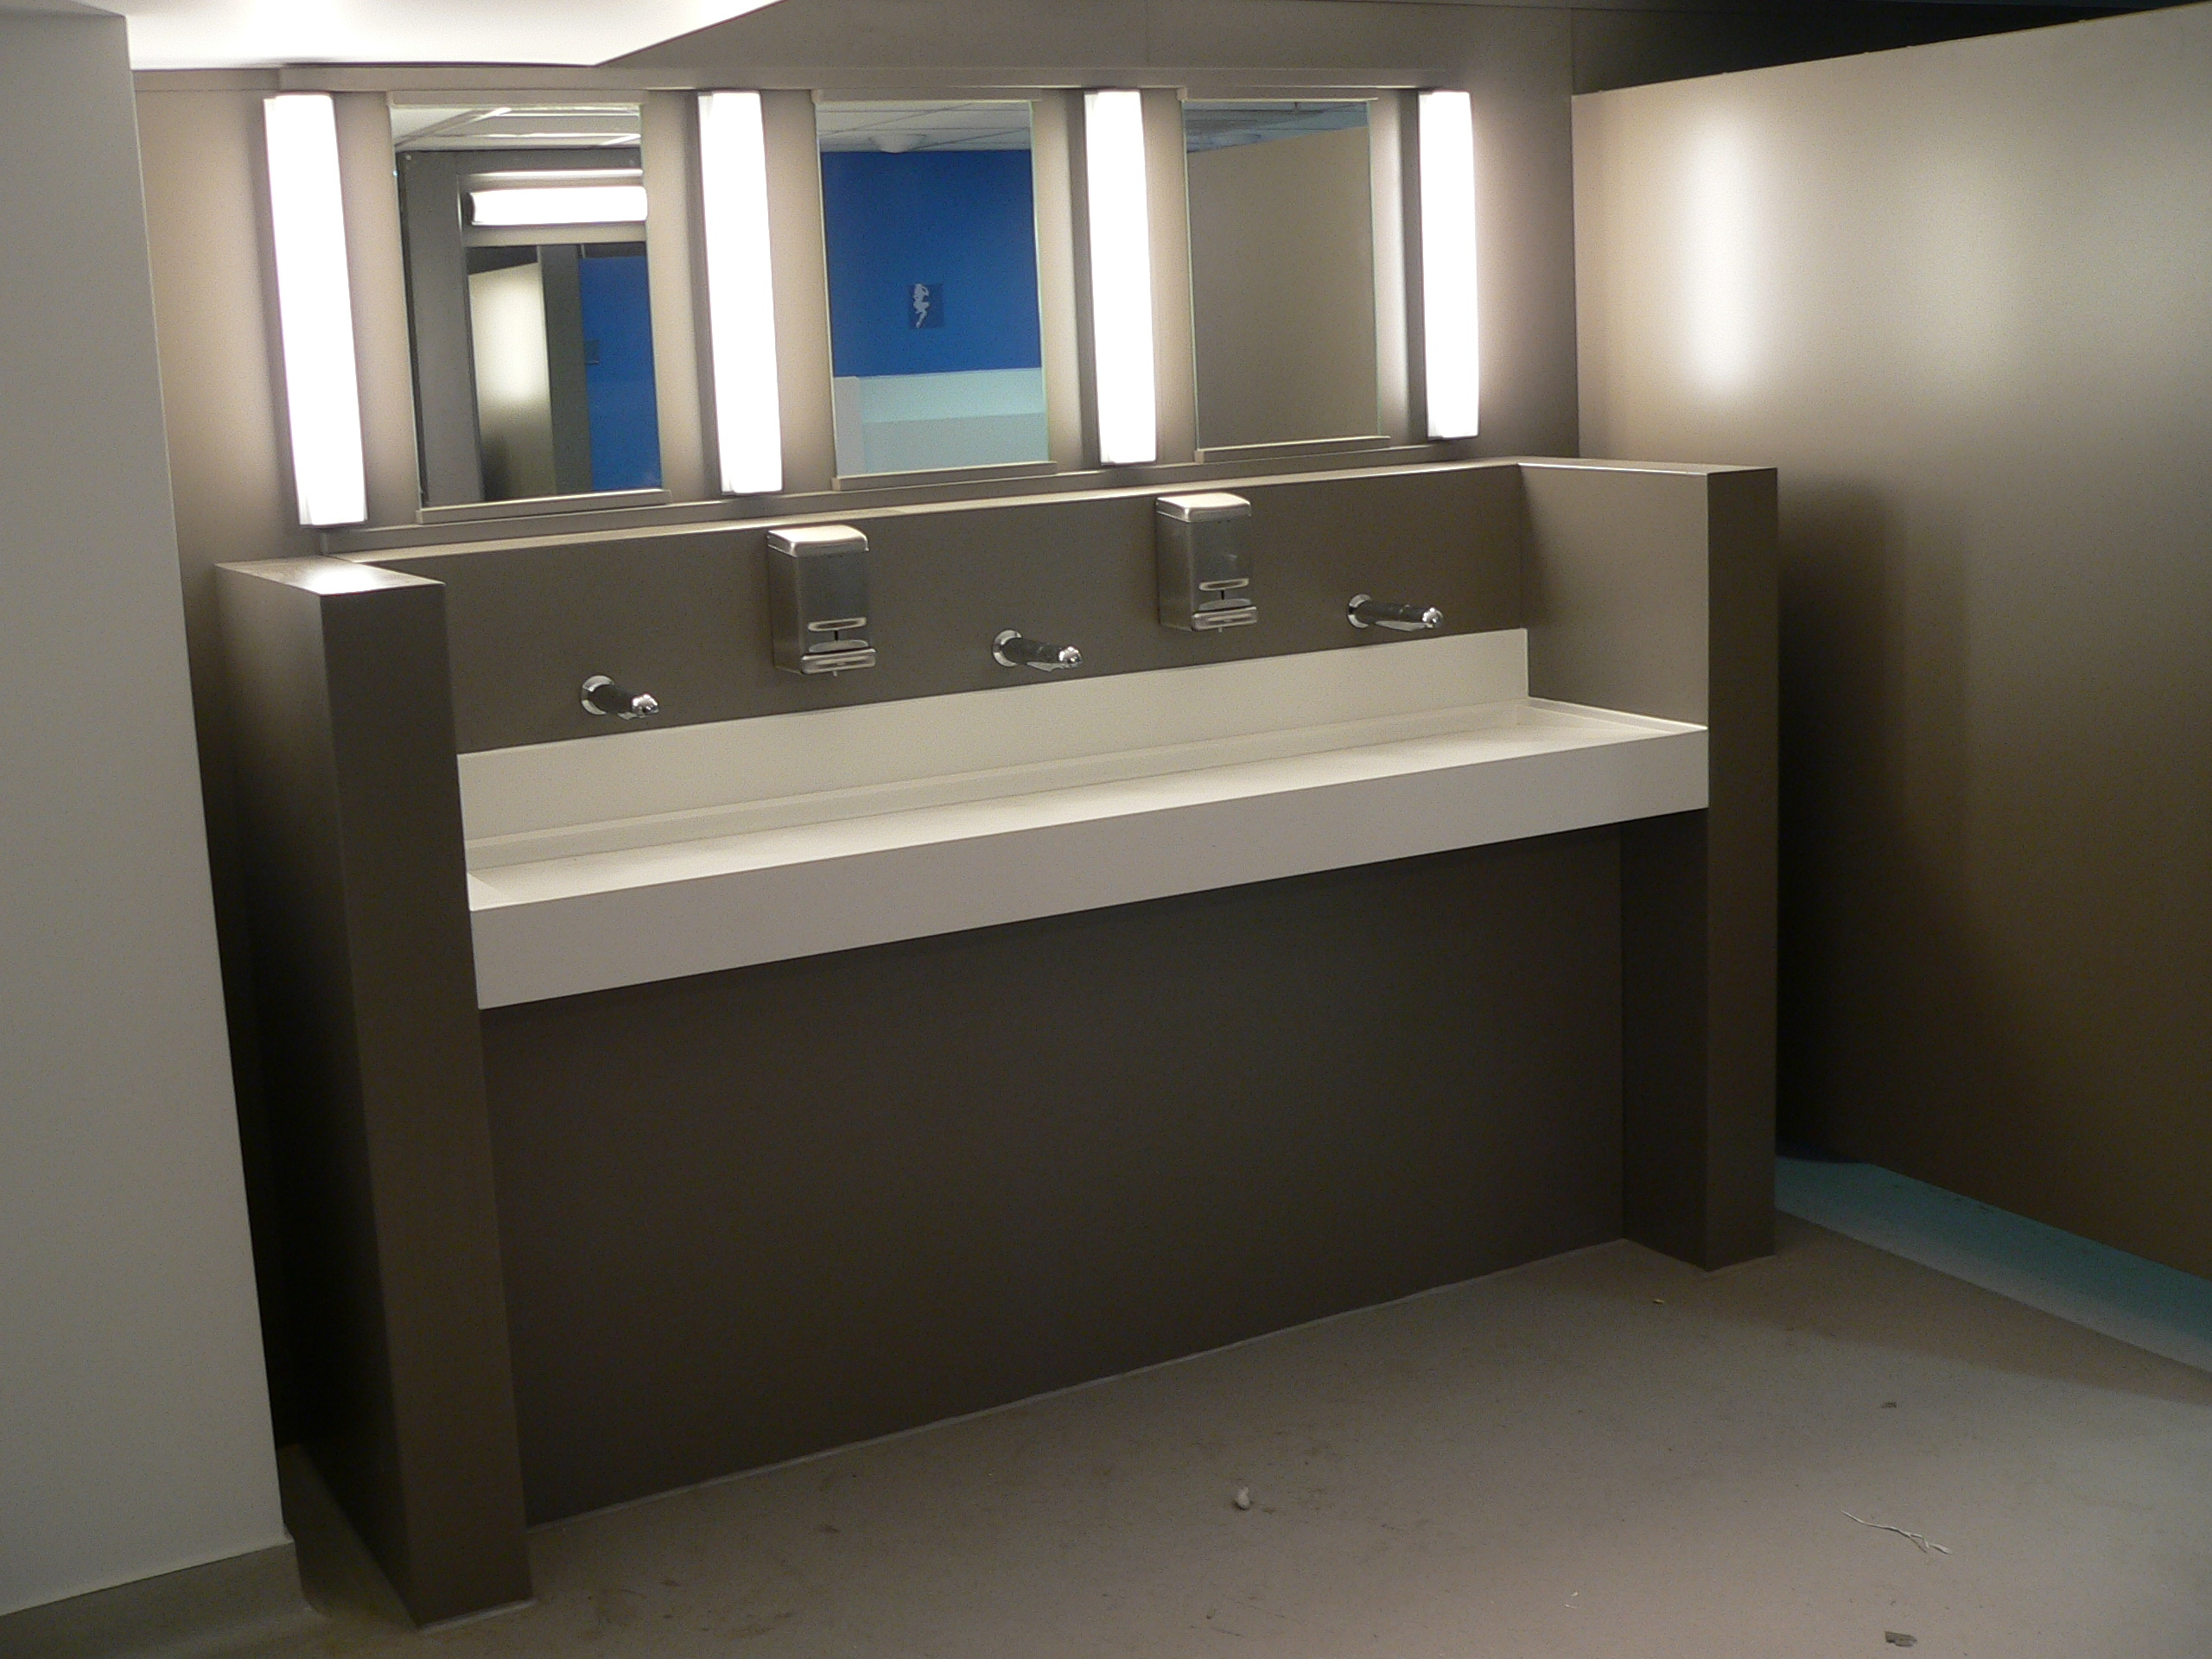 Sanitaire solid surface